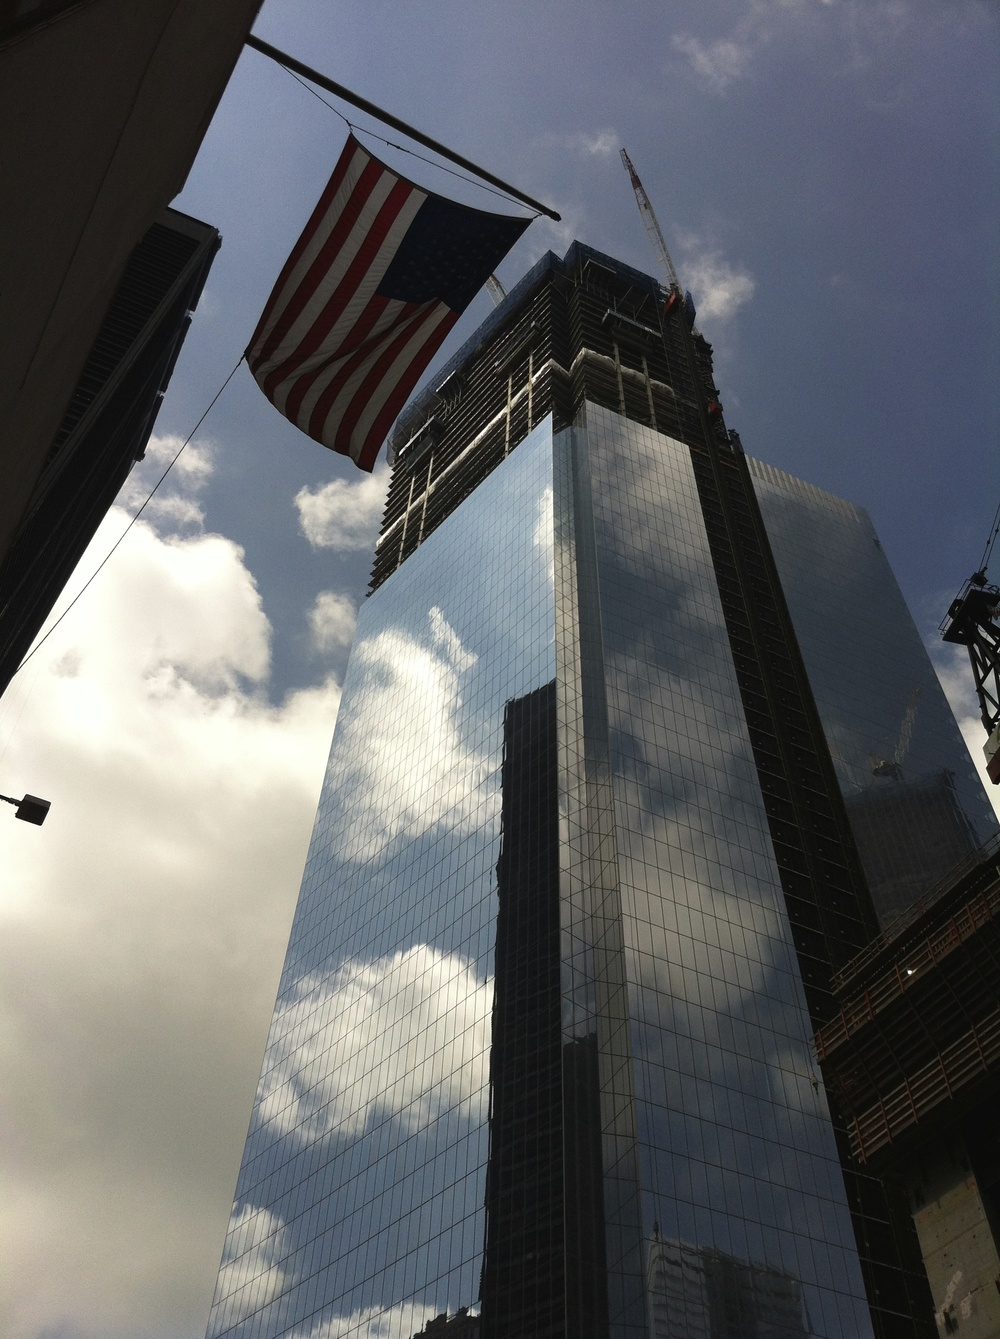 the freedom tower was almost done! i can't wait to revisit the world trade center memorial